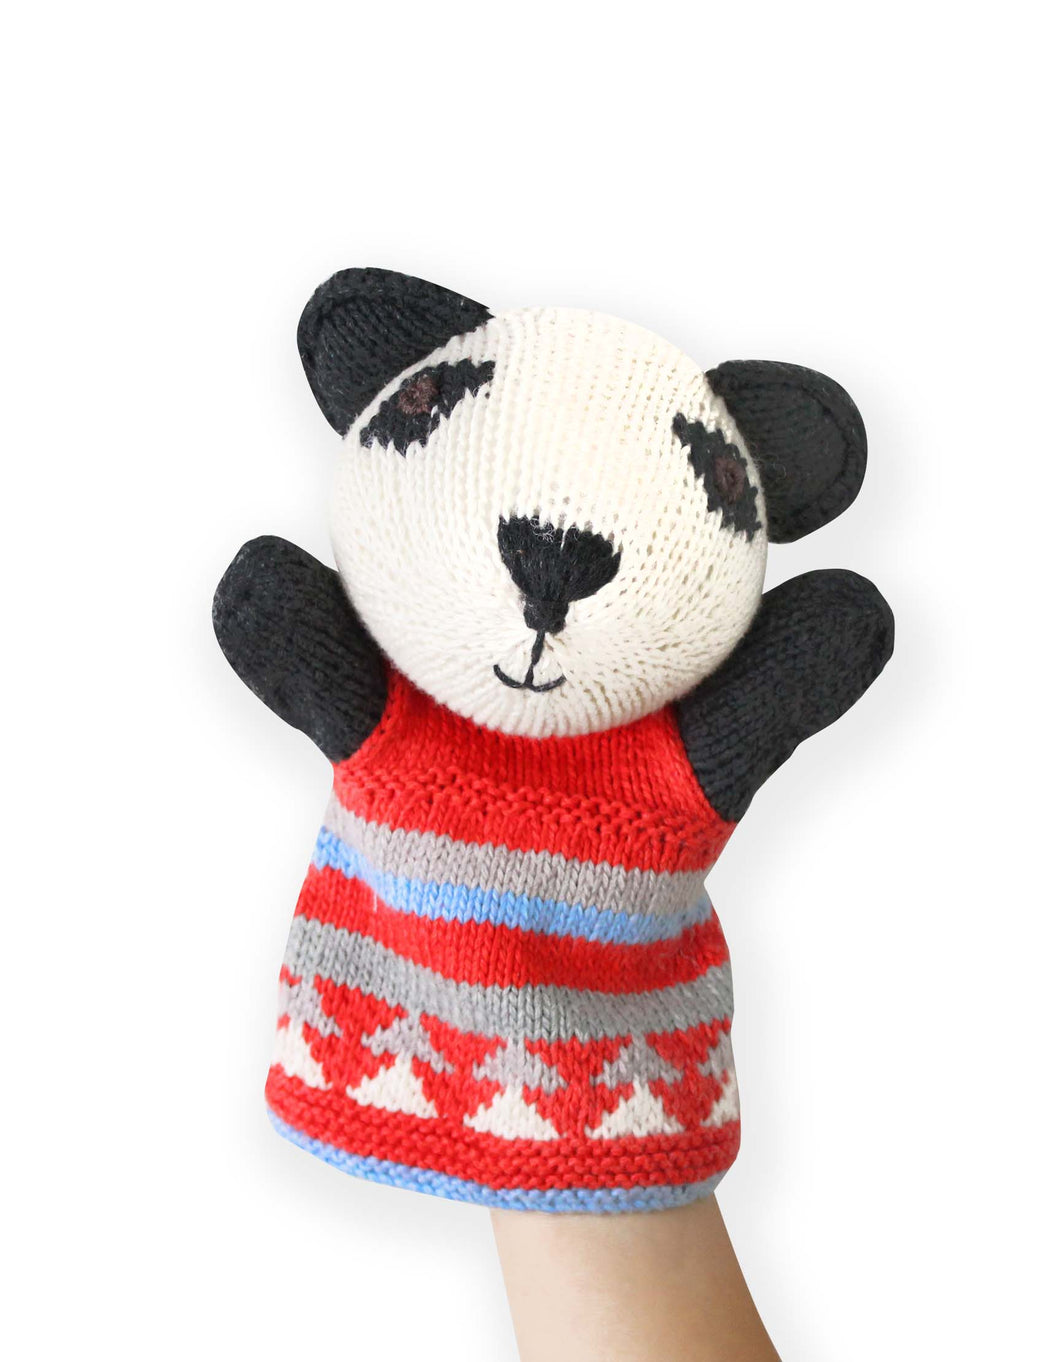 Knitted Panda Hand Puppet